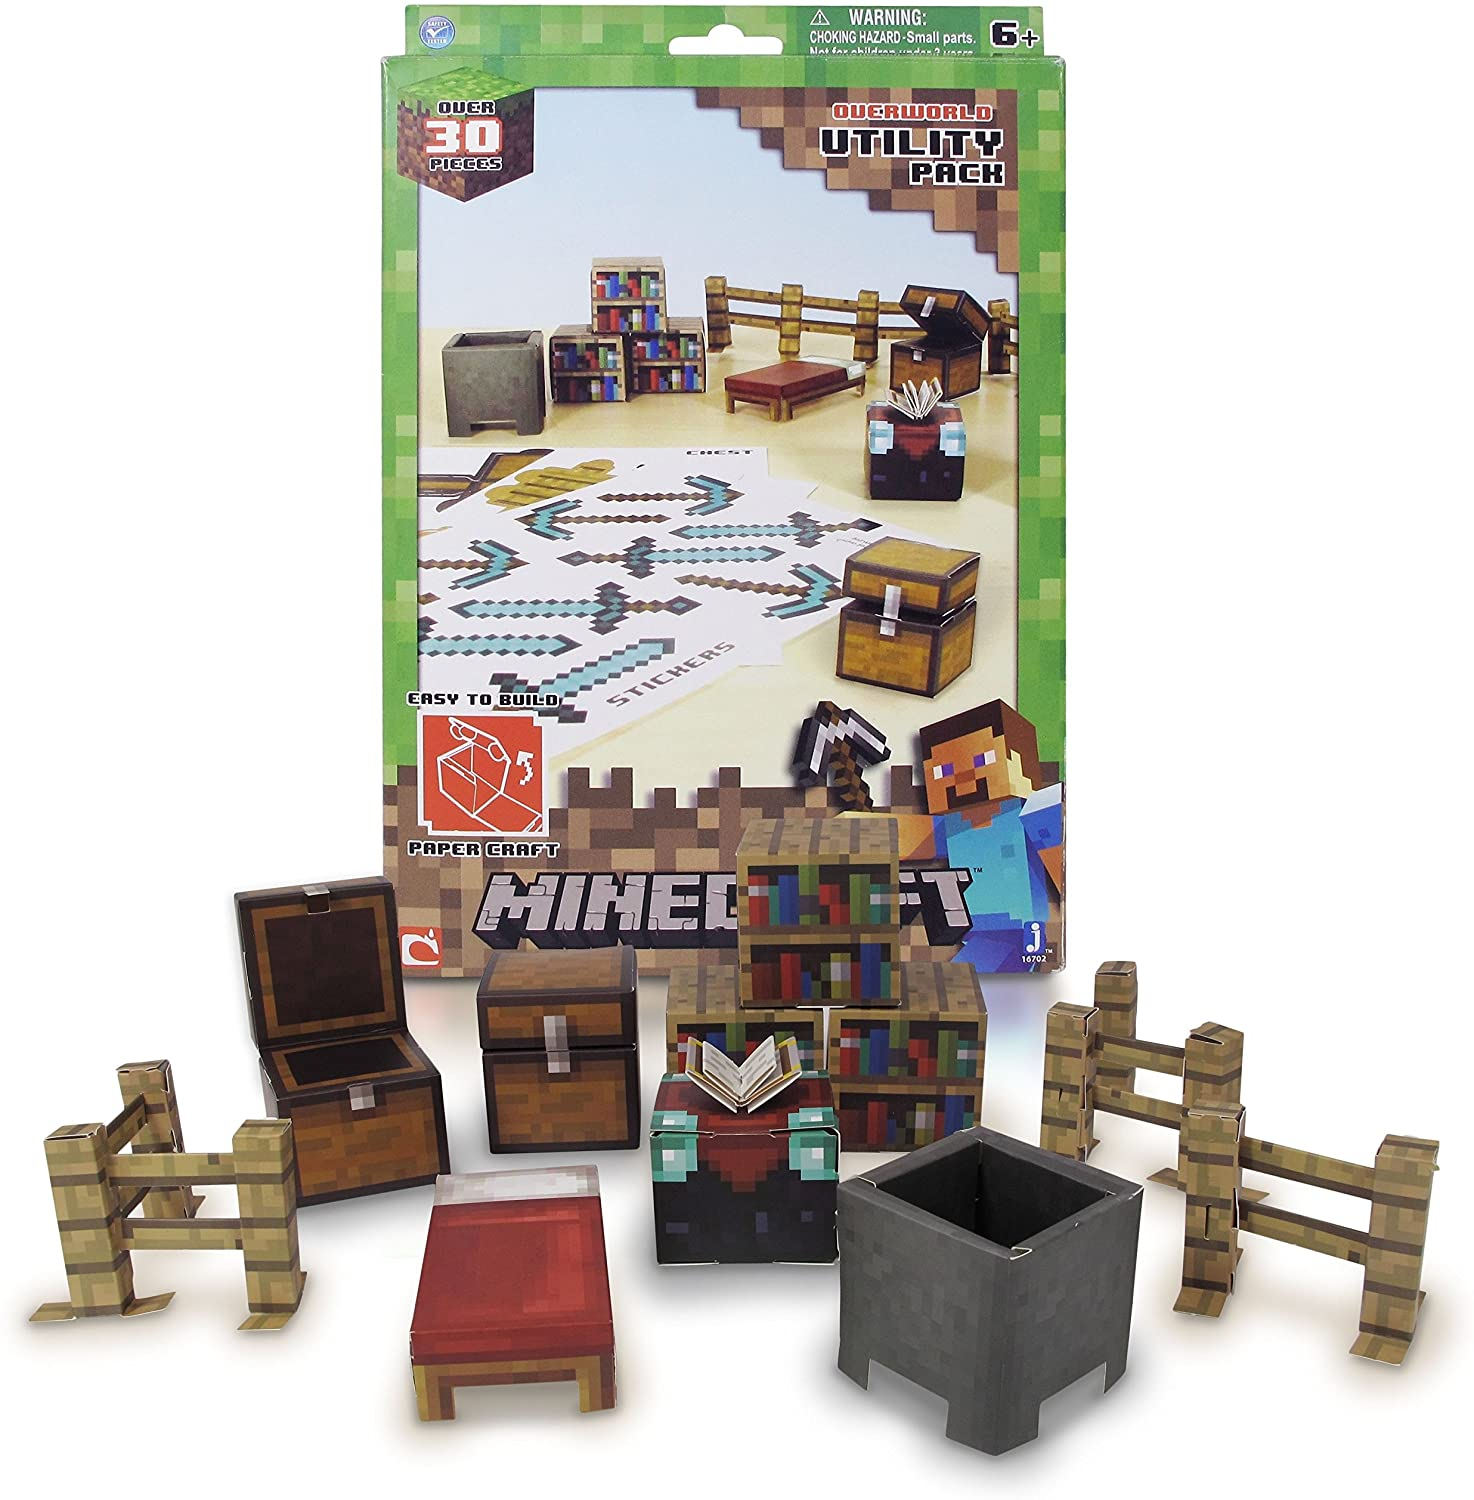 Minecraft Papercraft Utility Pack, Over 30 Pieces